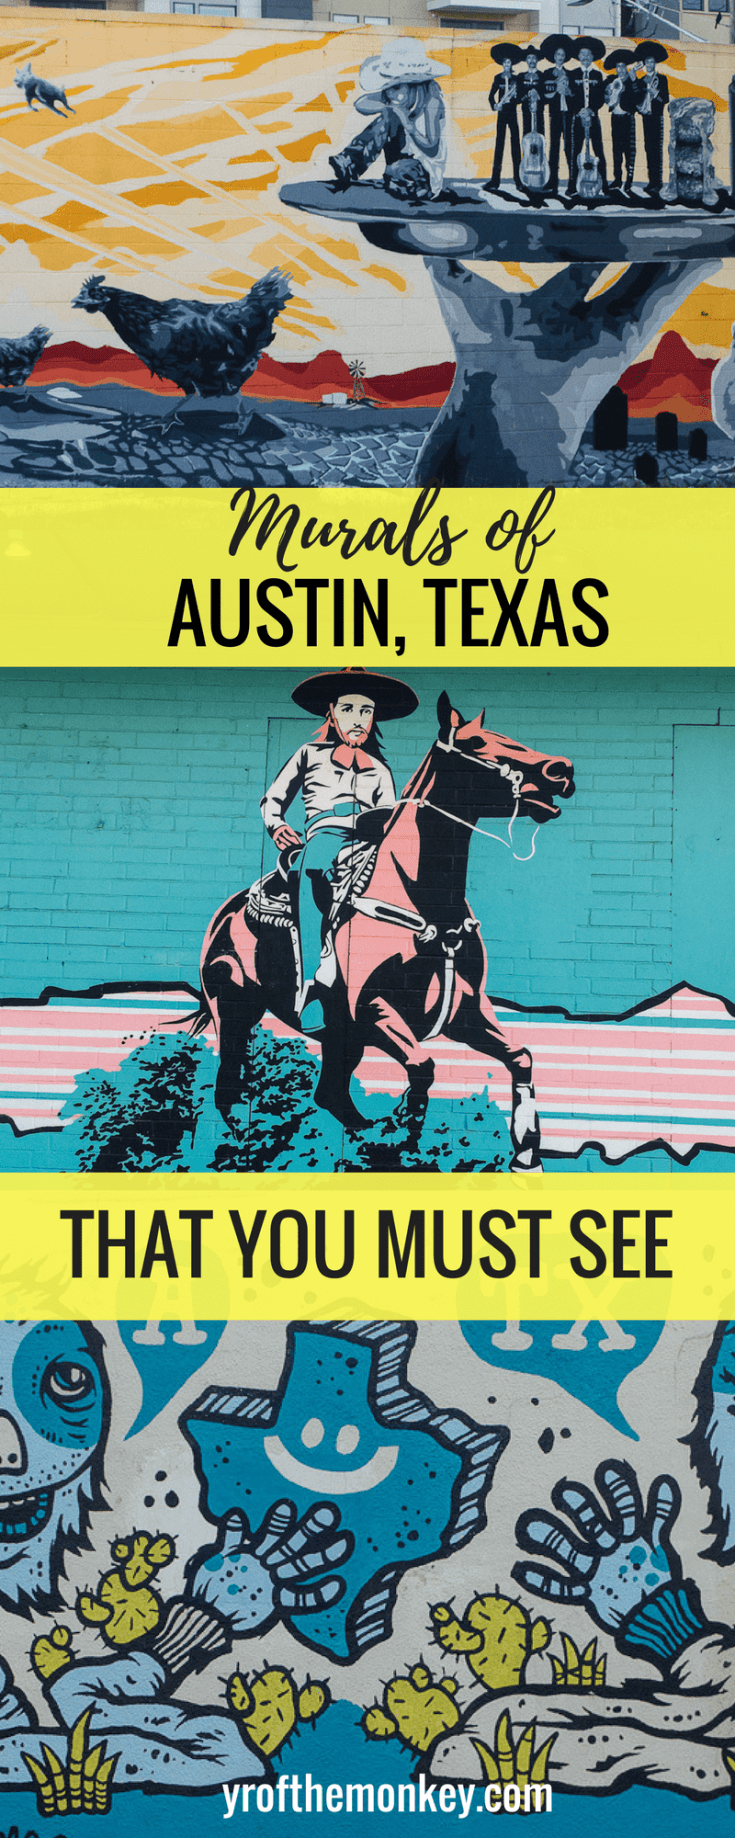 Austin murals guide is your one stop shop to all the popular instagrammable murals and street art of Austin, Texas, USA. Links to exact mural locations are included. Pin this to your street art or USA board. A complete treat for street art lovers! #streetart #murals #austin #texas #usa #streetartguide